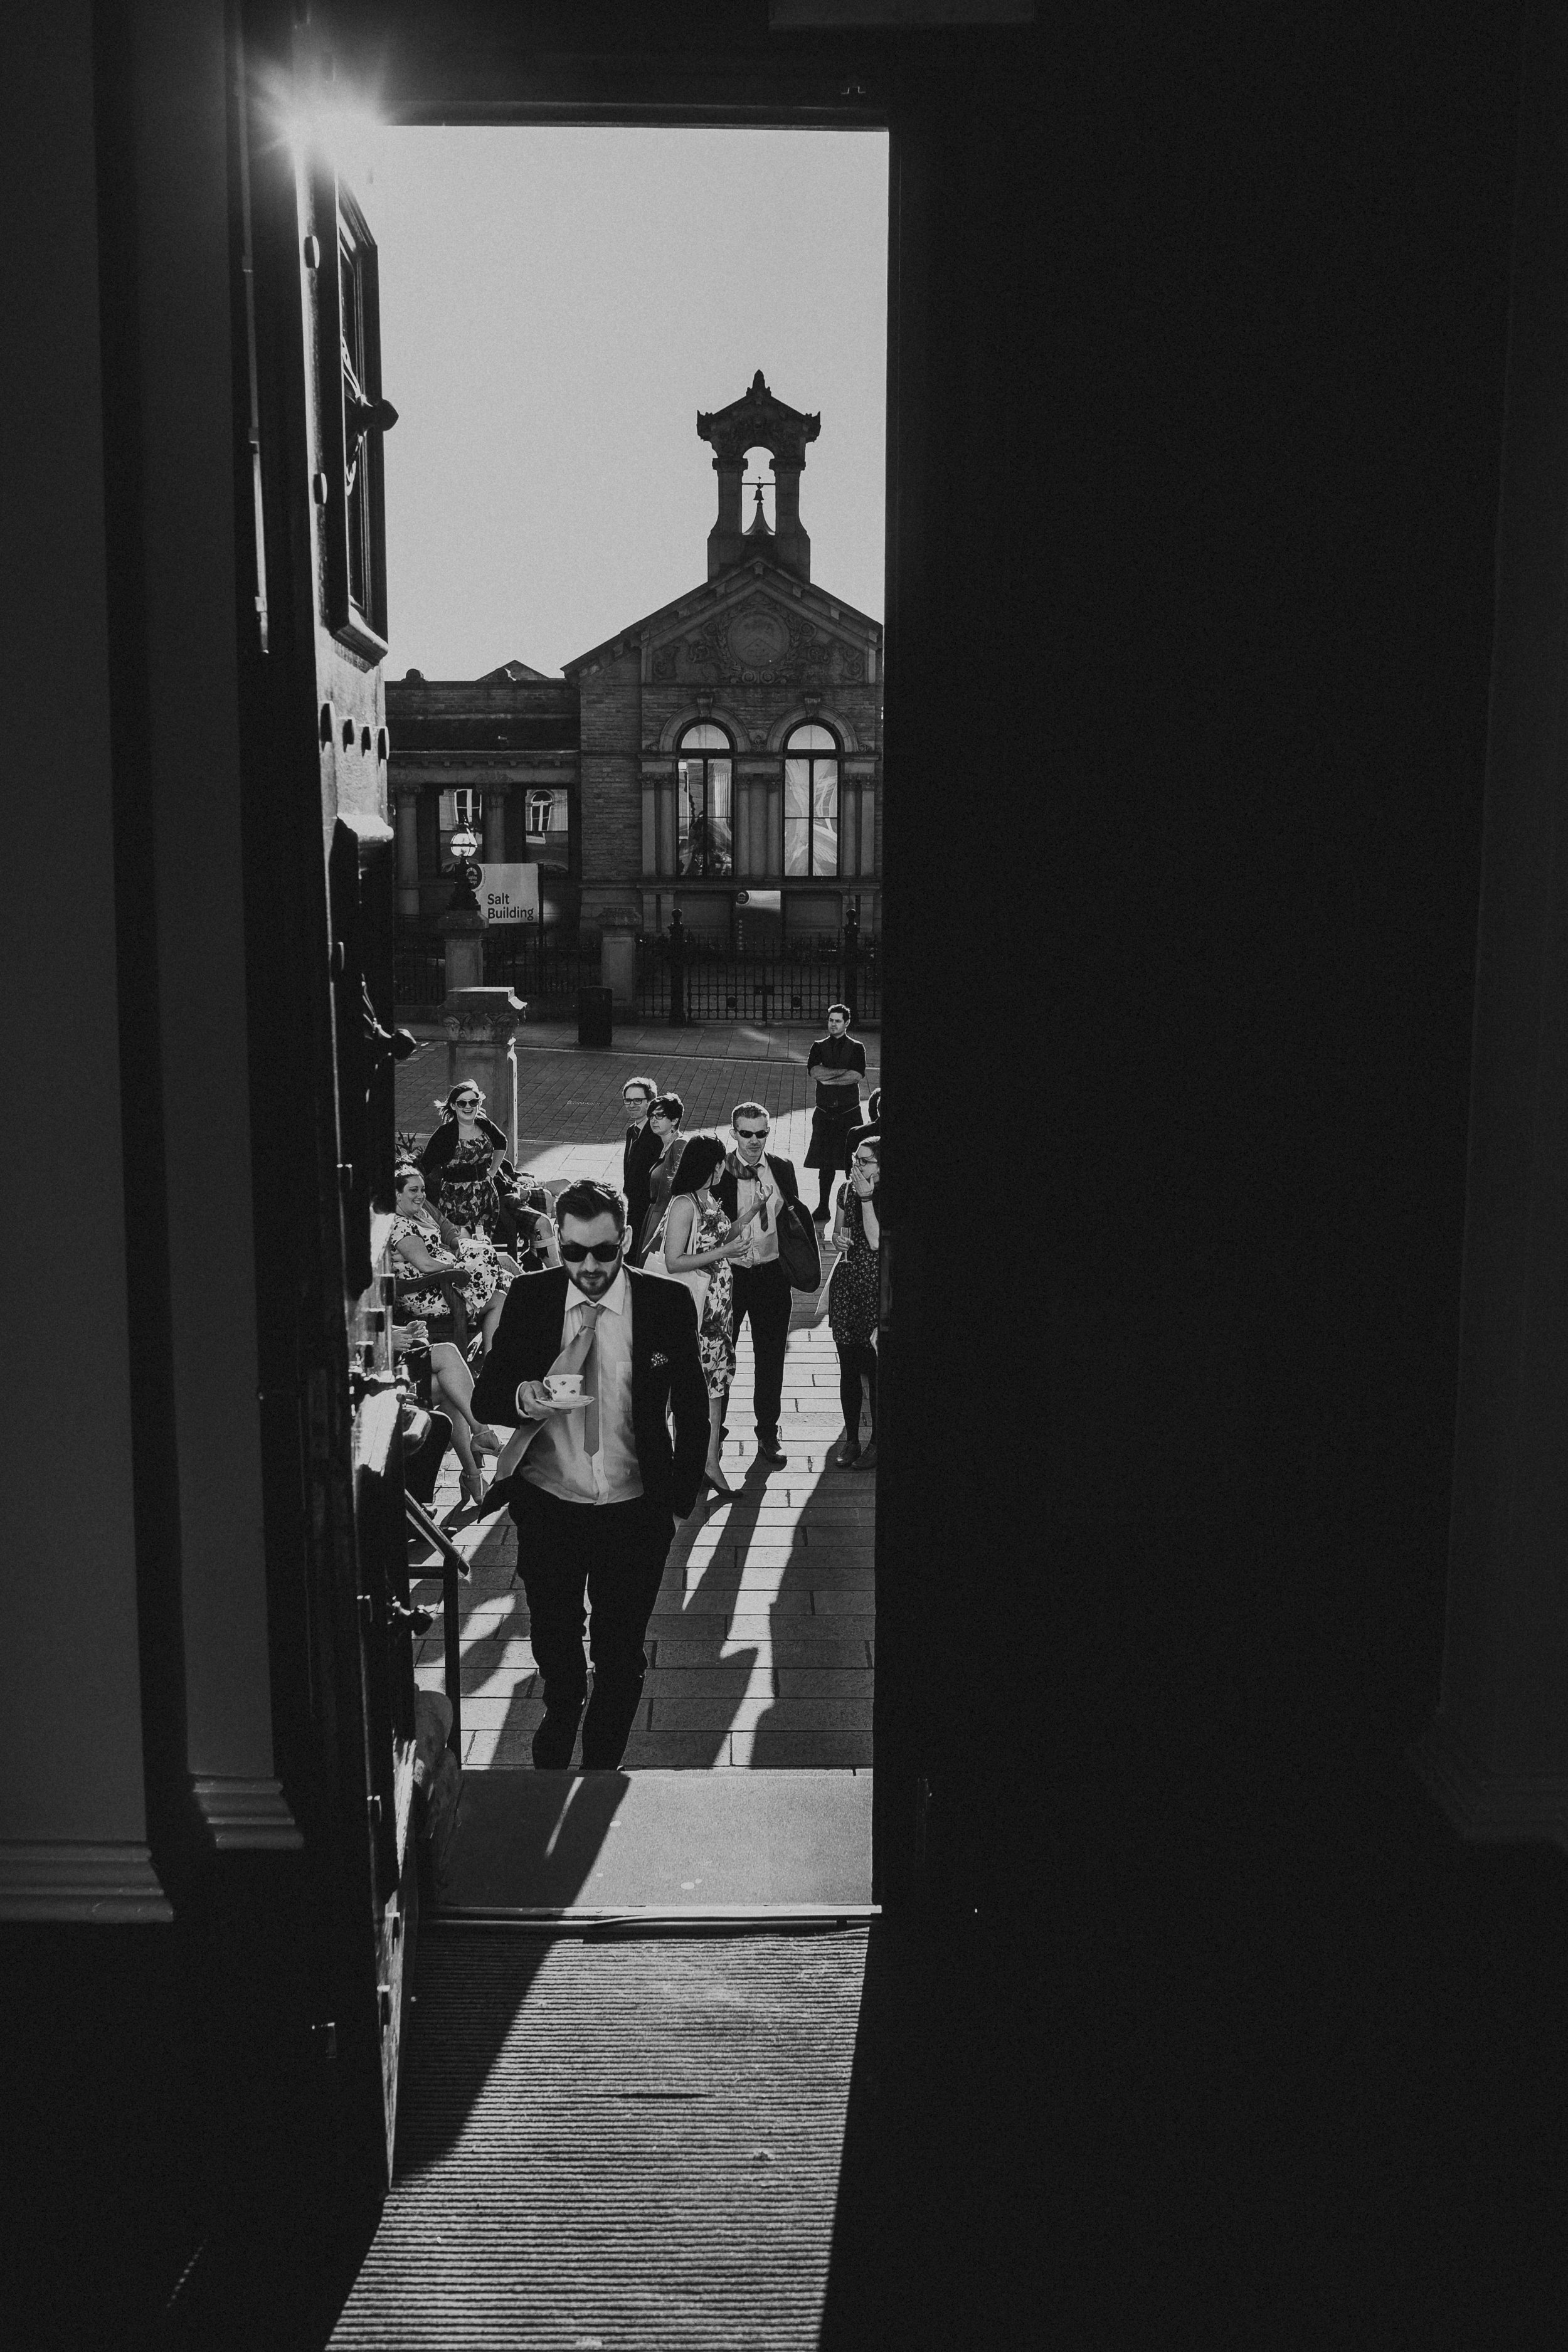 VICTORIA_HALL_SALTAIRE_VINTAGE_YORKSHIRE_WEDDING_PJ_PHILLIPS_PHOTOGRAPHY_116.jpg